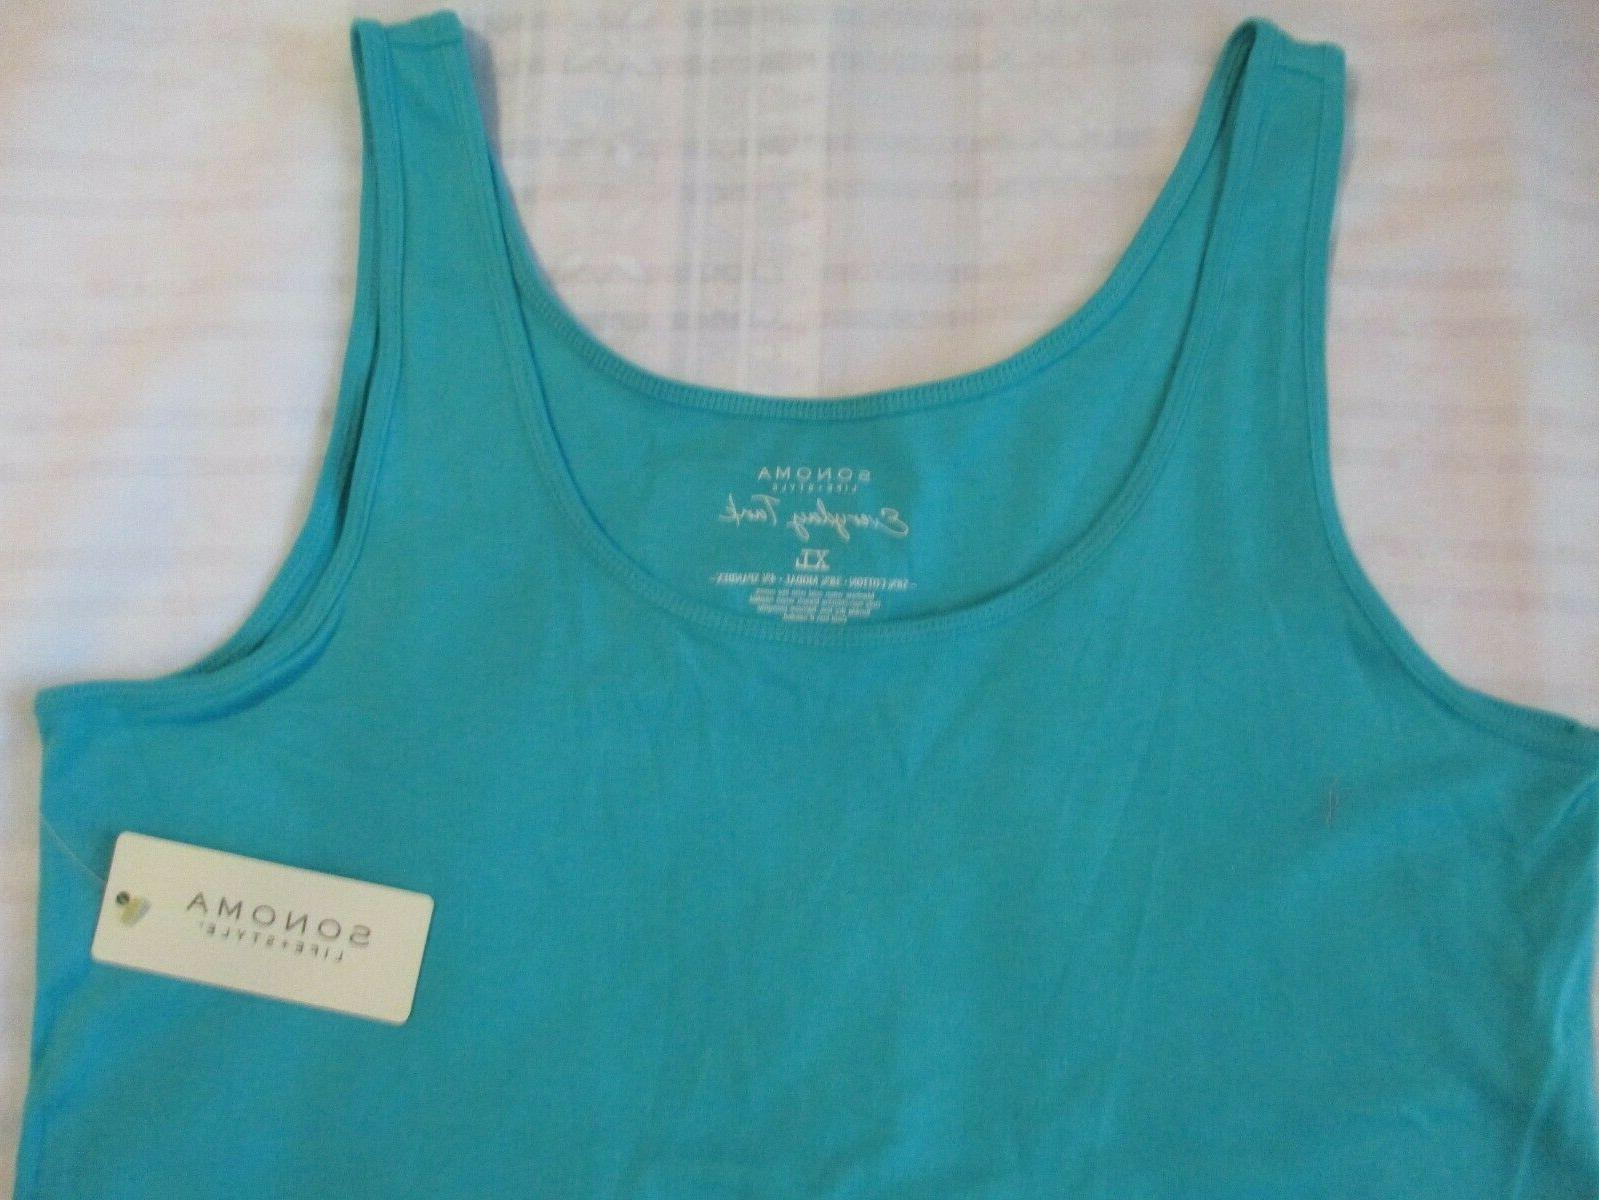 WOMENS EXTRA XL EVERYDAY TANK TOP SOLID TURQUOISE